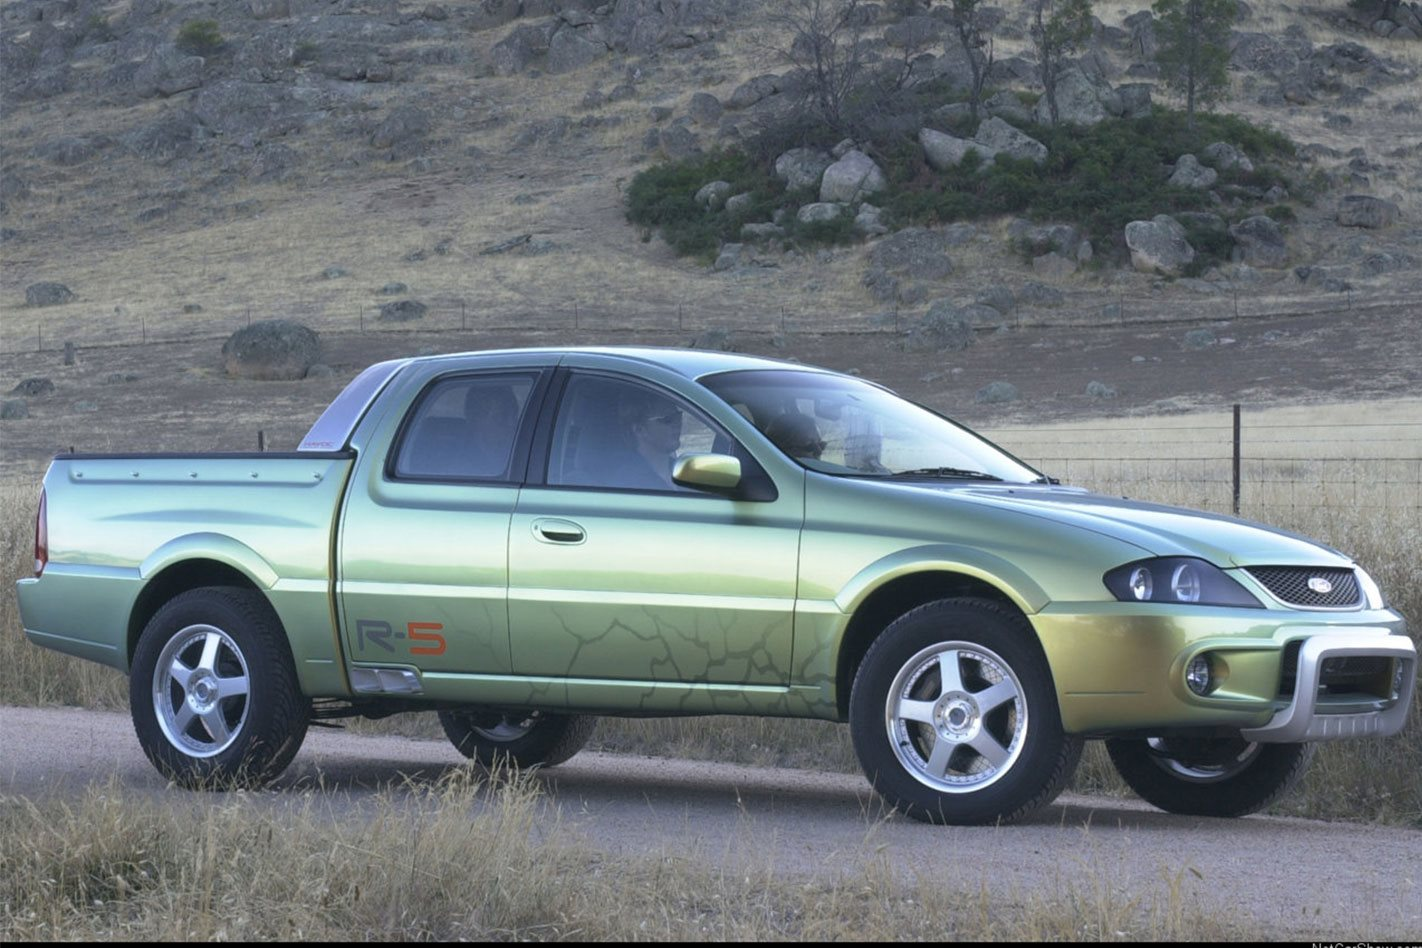 Ford S Forgotten Ute Concepts That Gave Us The Ranger Raptor